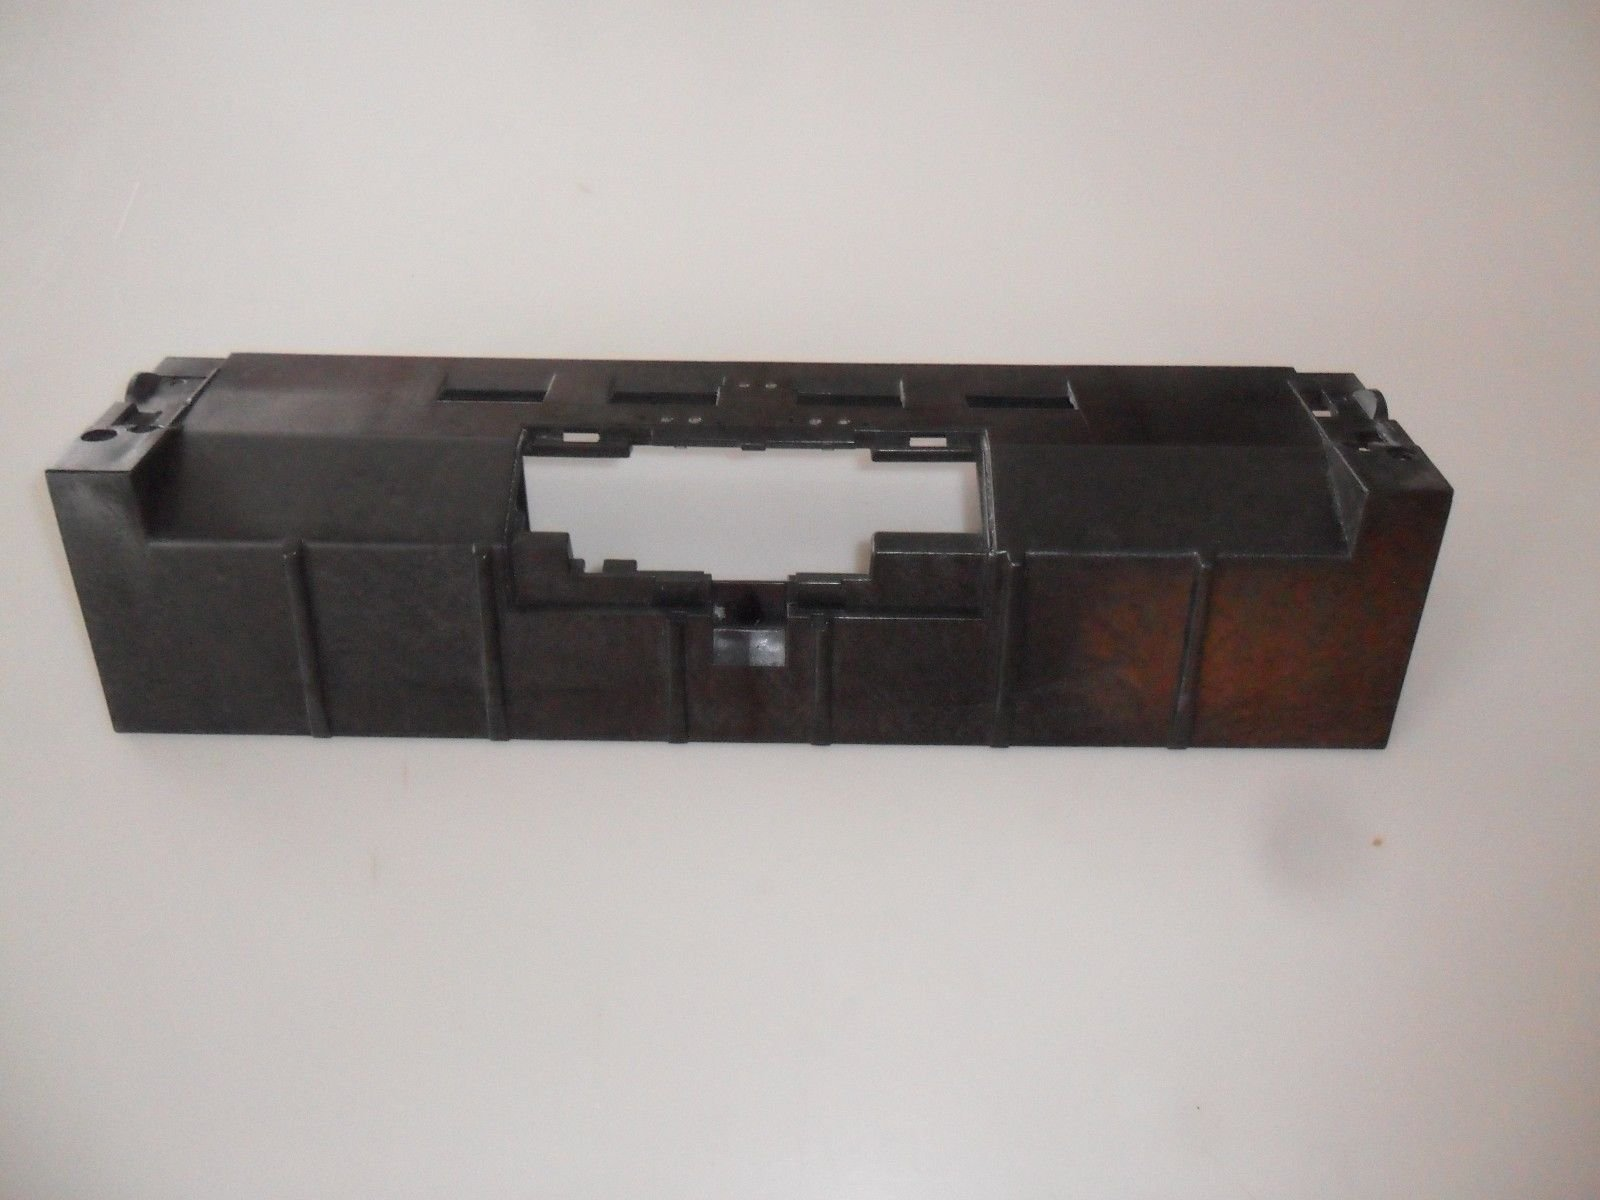 IBM 90H3567-NE-OEM - INFOPRINT N32/40 FUSER ASSEMBLY WITH EXCHANGE by IBM Inc. (Image #1)